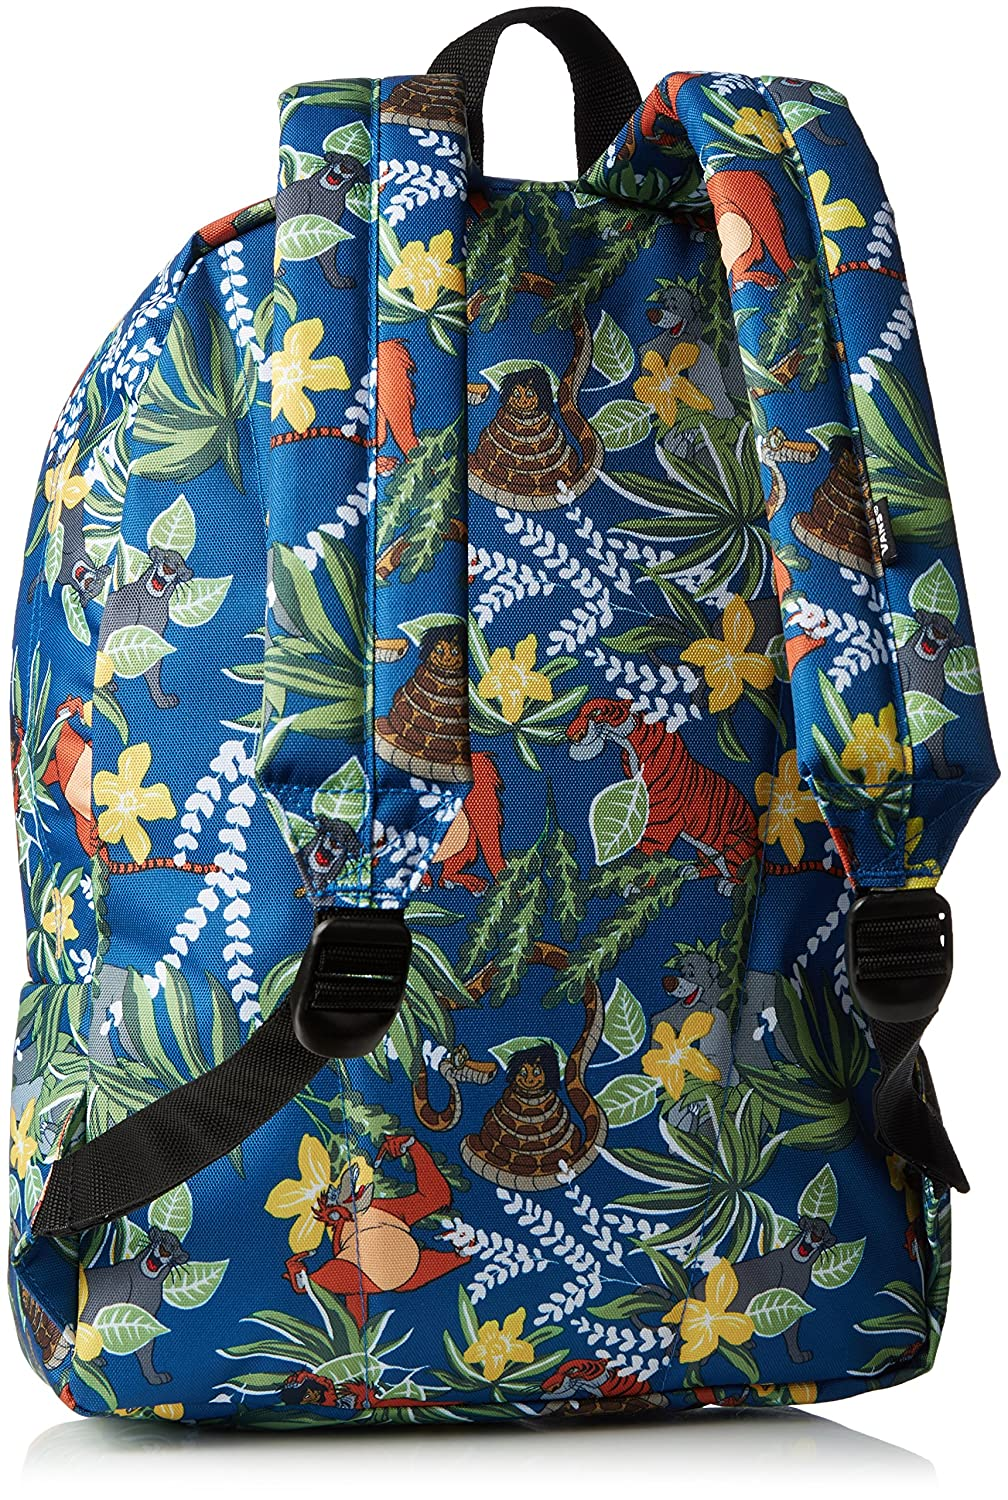 f05795292e Vans Unisex Old Skool II Backpack The Jungle Book  Amazon.co.uk  Shoes    Bags